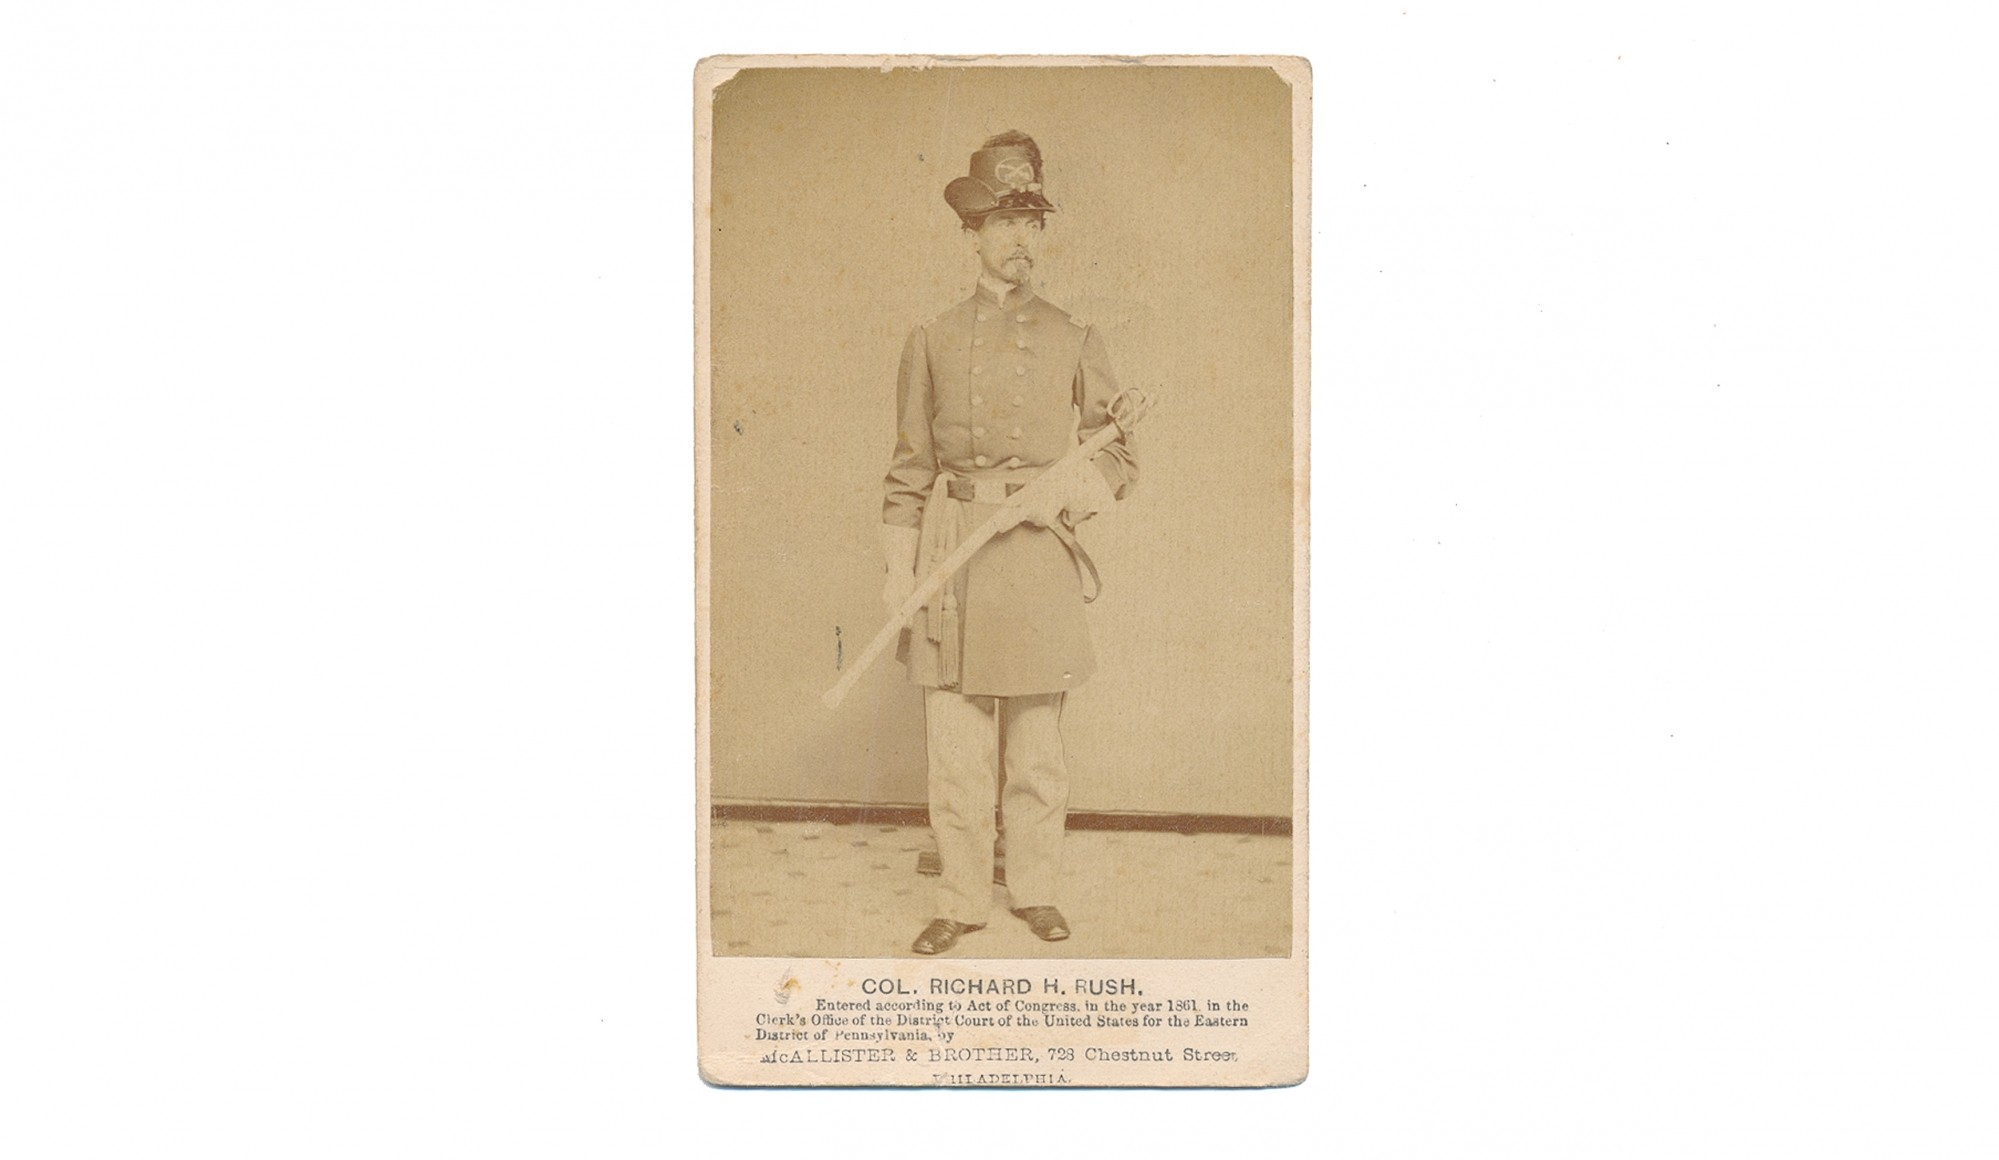 CDV OF US COLONEL RICHARD H. RUSH